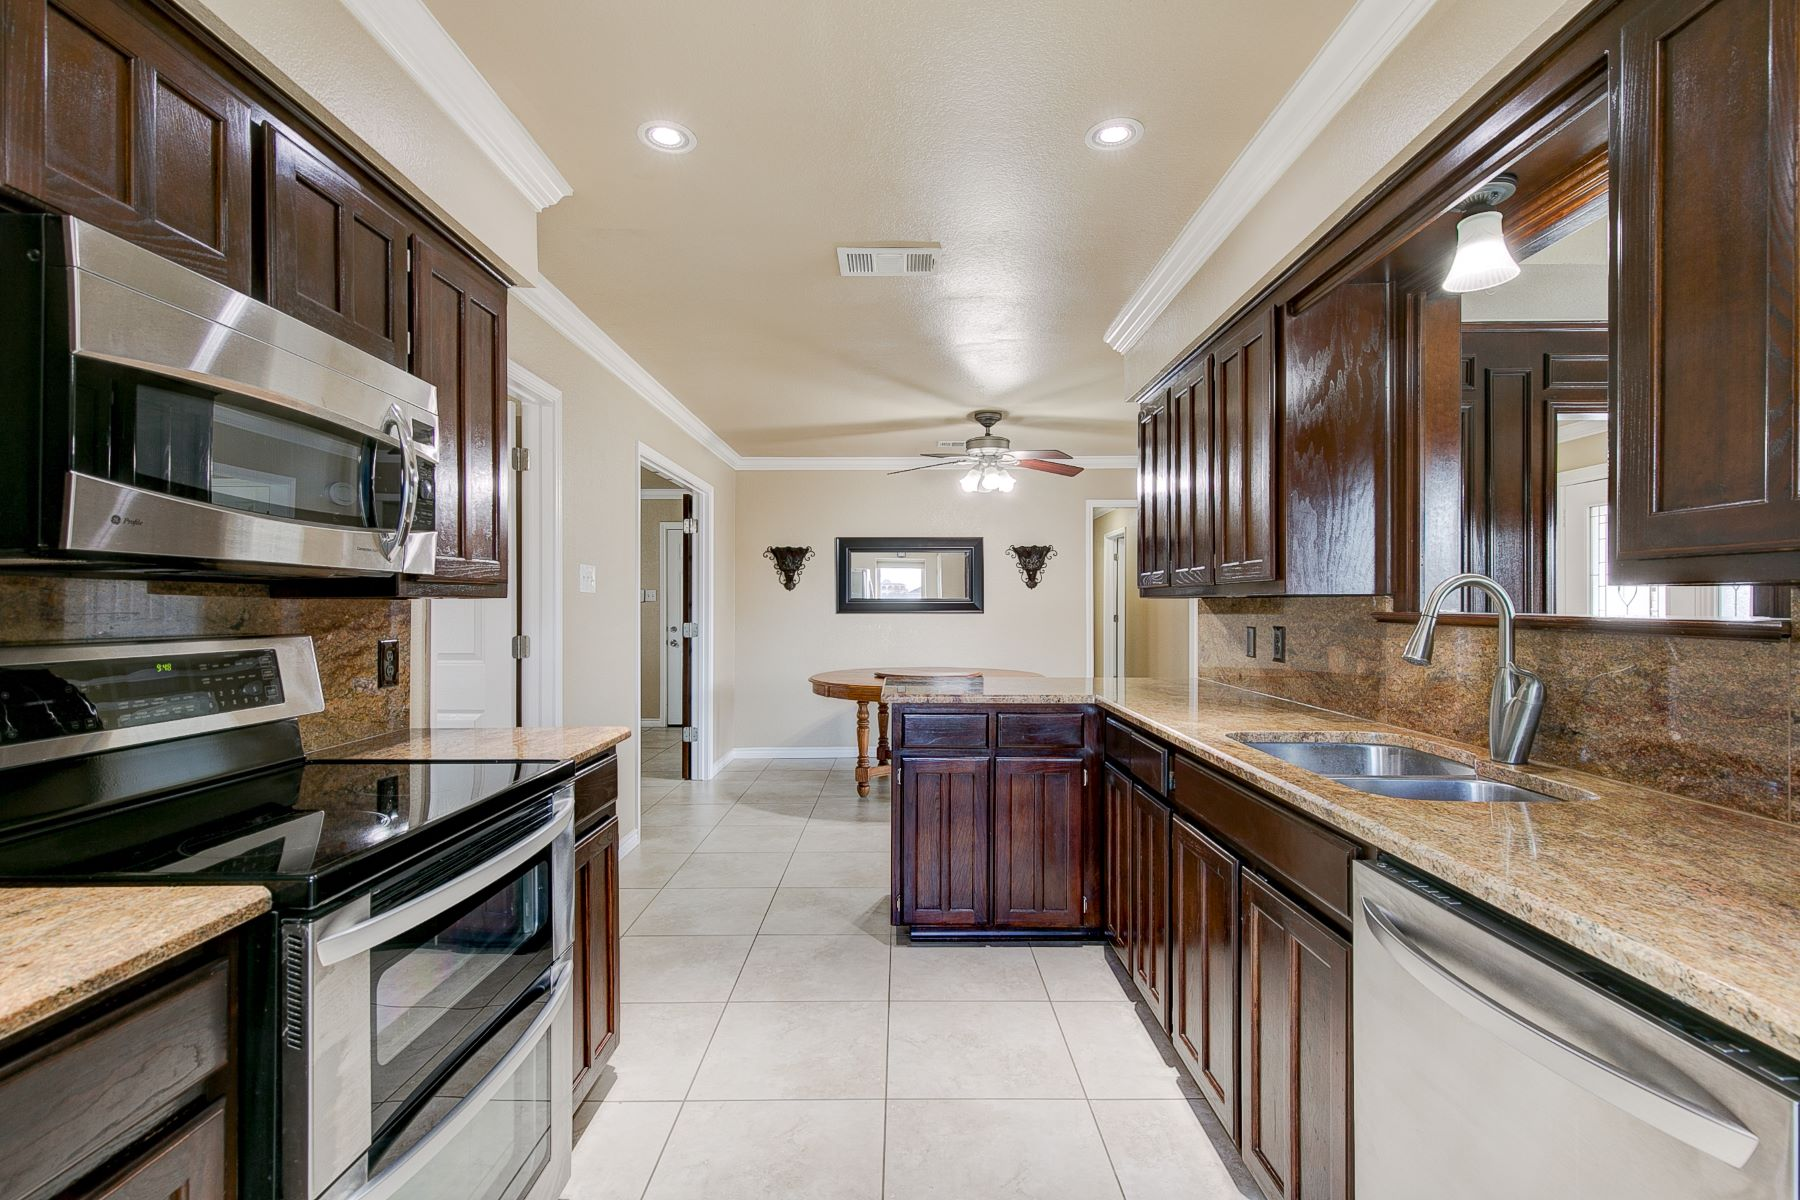 Single Family Homes for Sale at Country living at it's best near transit access to the Chisholm Trail! 6117 FM 1902 Burleson, Texas 76058 United States